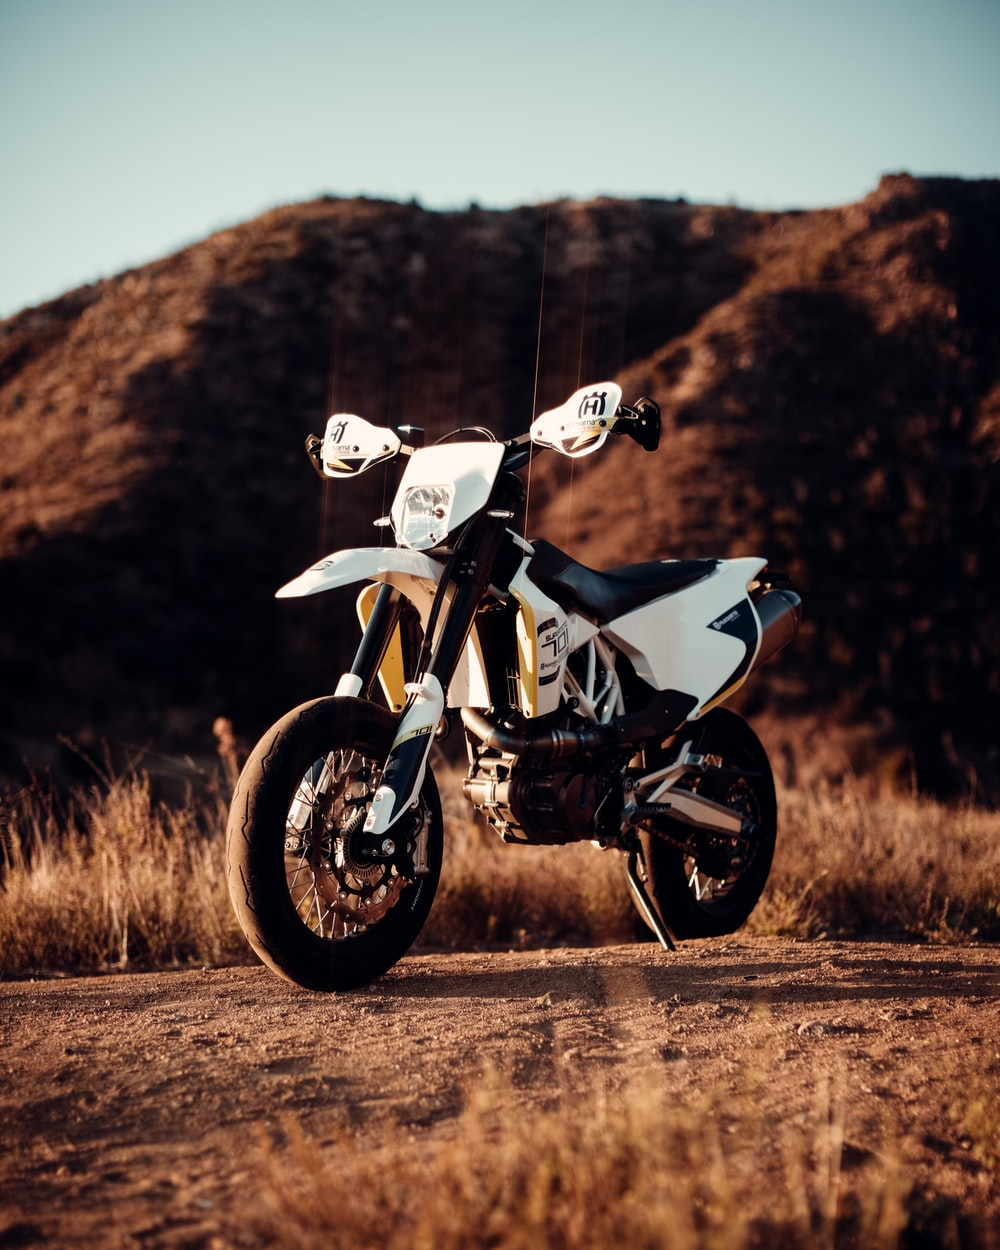 white and black sports bike on brown grass field during daytime